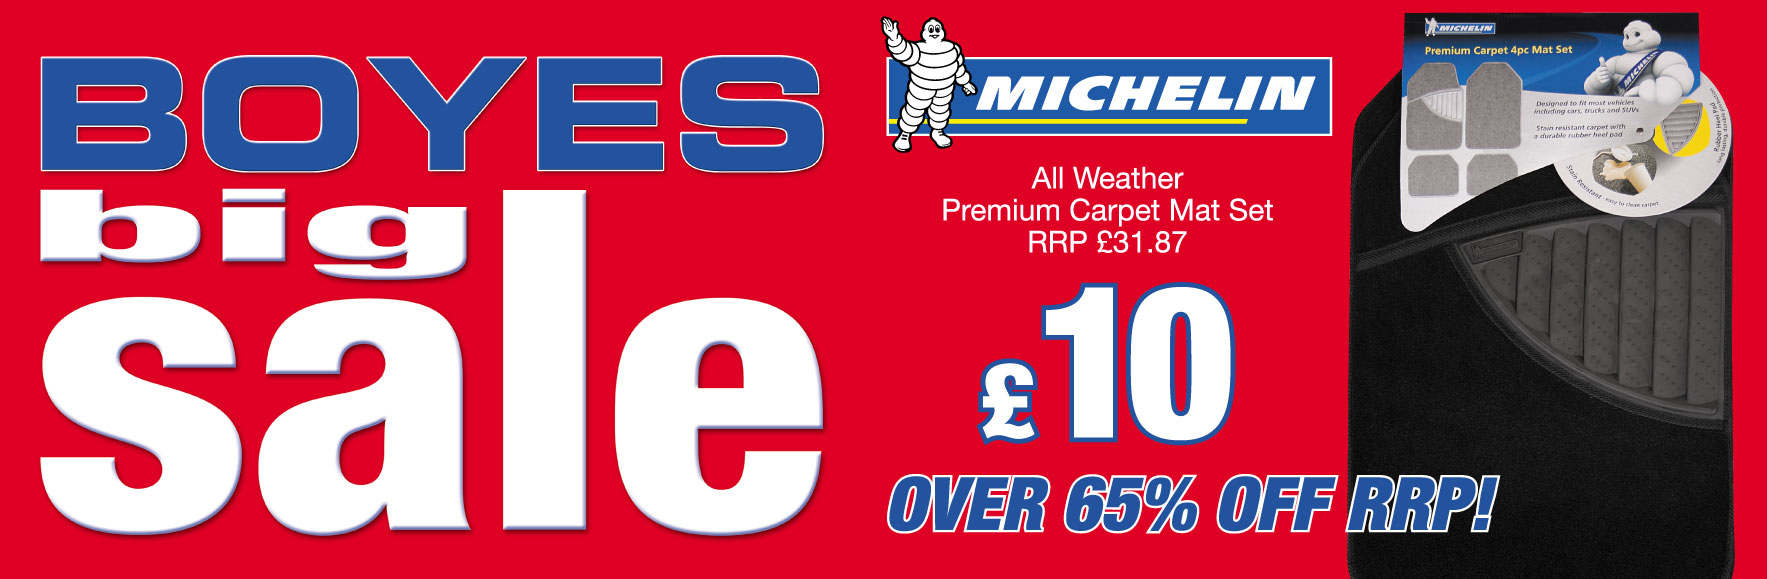 Michelin Carpet Mat Set RRP £31.87 NOW £10